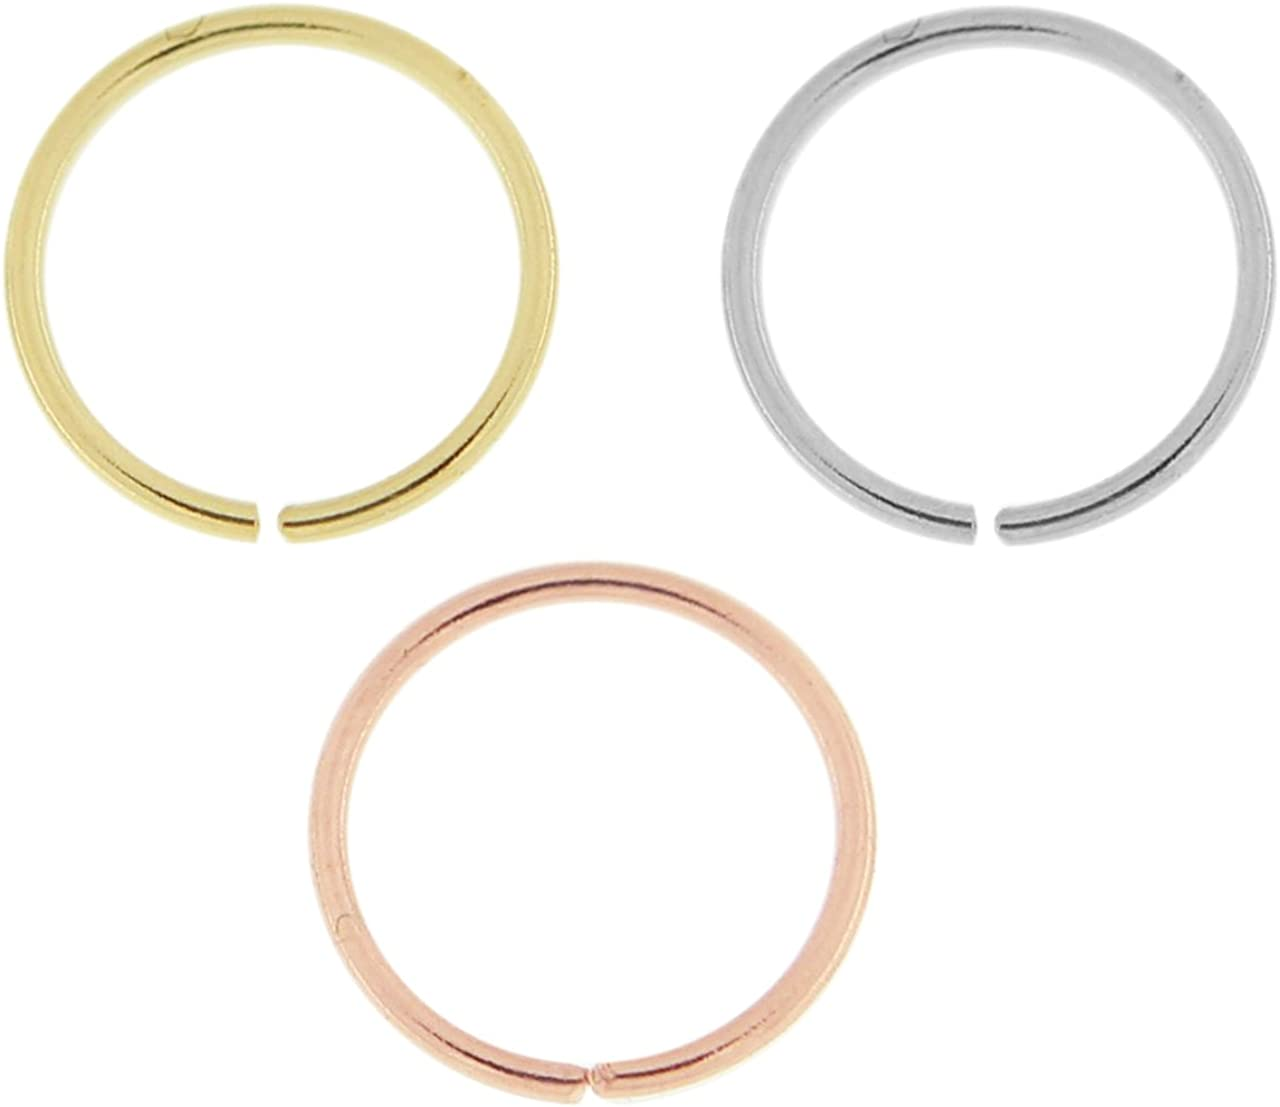 PiercingPoint 3 Pieces Box Set of 14 Karat Solid Gold 20 Gauge - 6MM Length Seamless Continuous Nose Hoop Ring